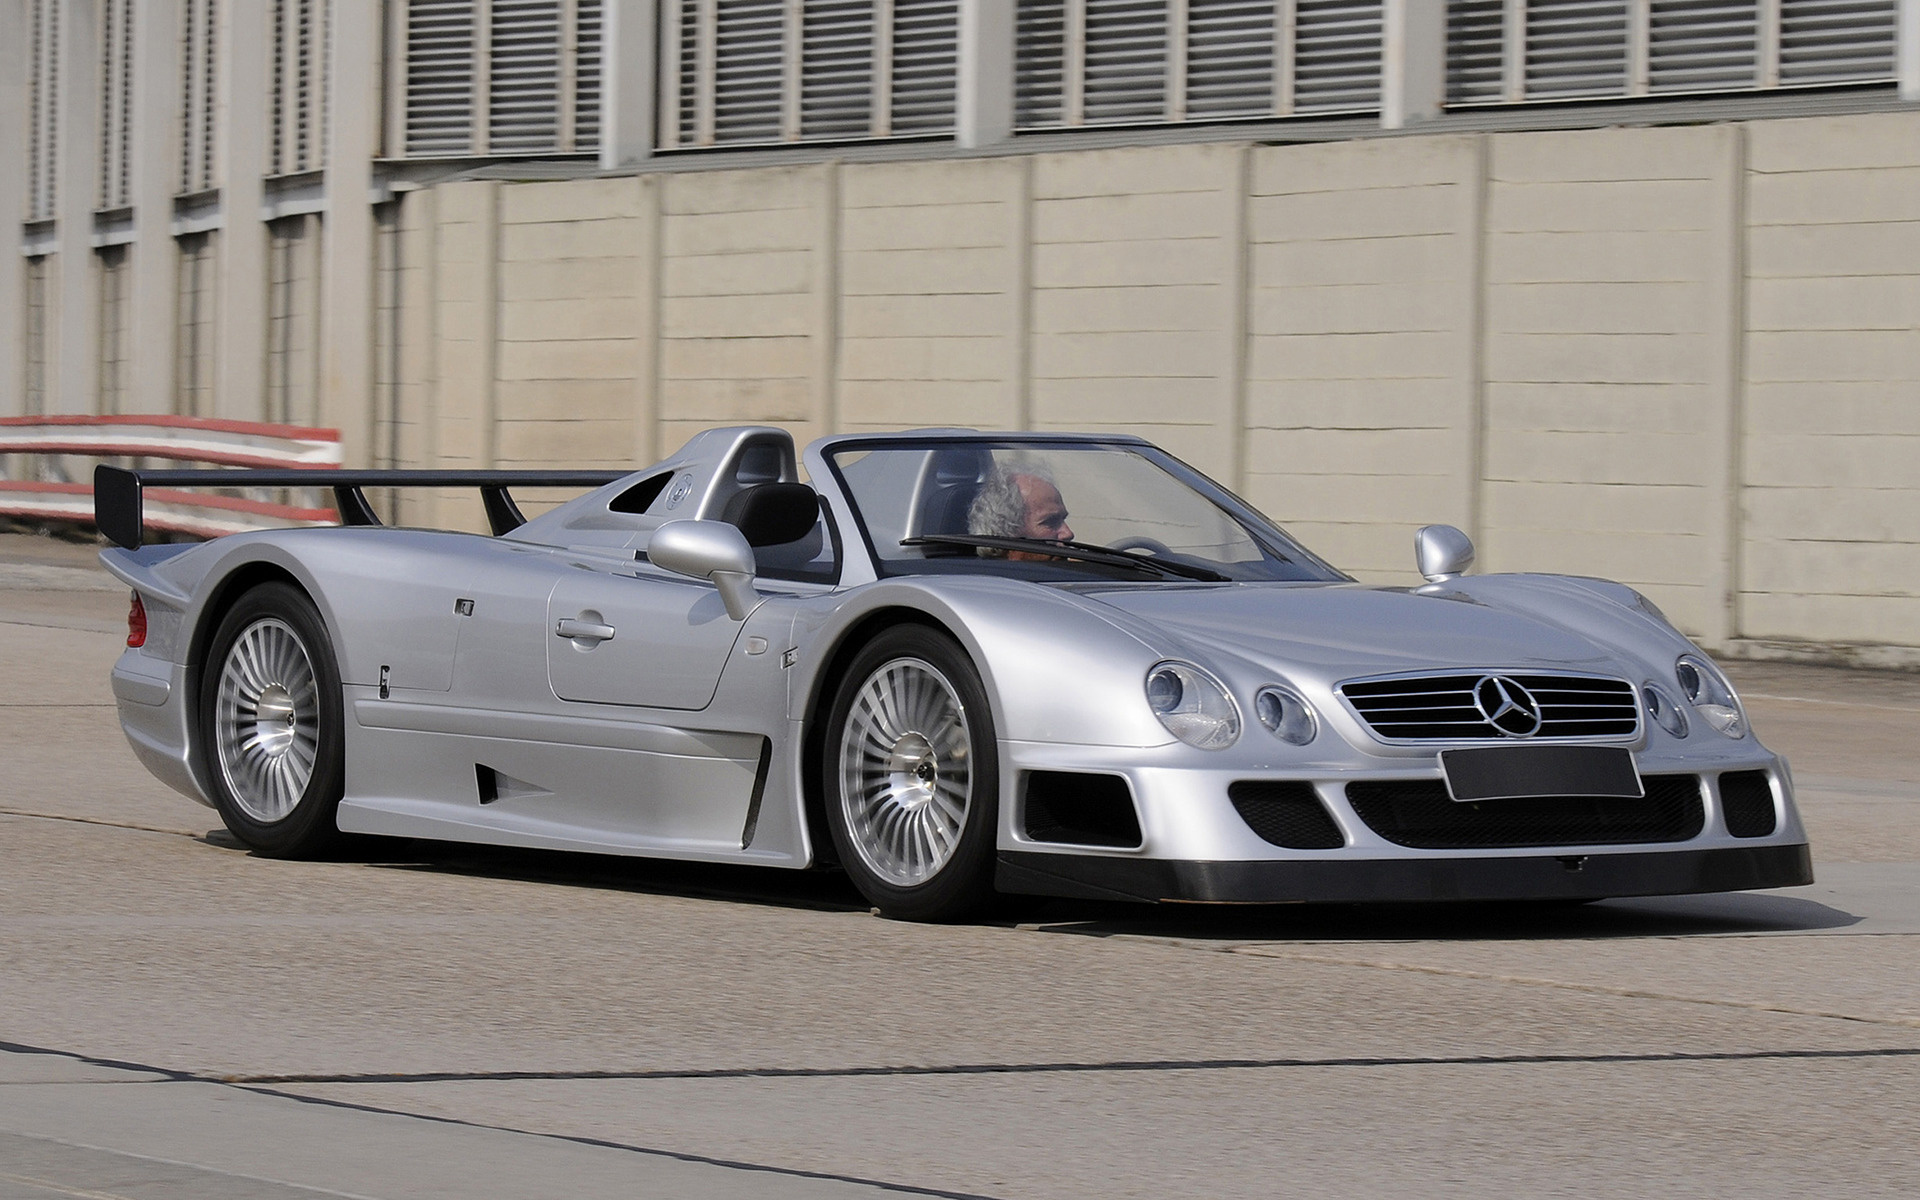 Mercedes Gtr Amg >> 1998 Mercedes-Benz CLK GTR Roadster - Wallpapers and HD Images | Car Pixel